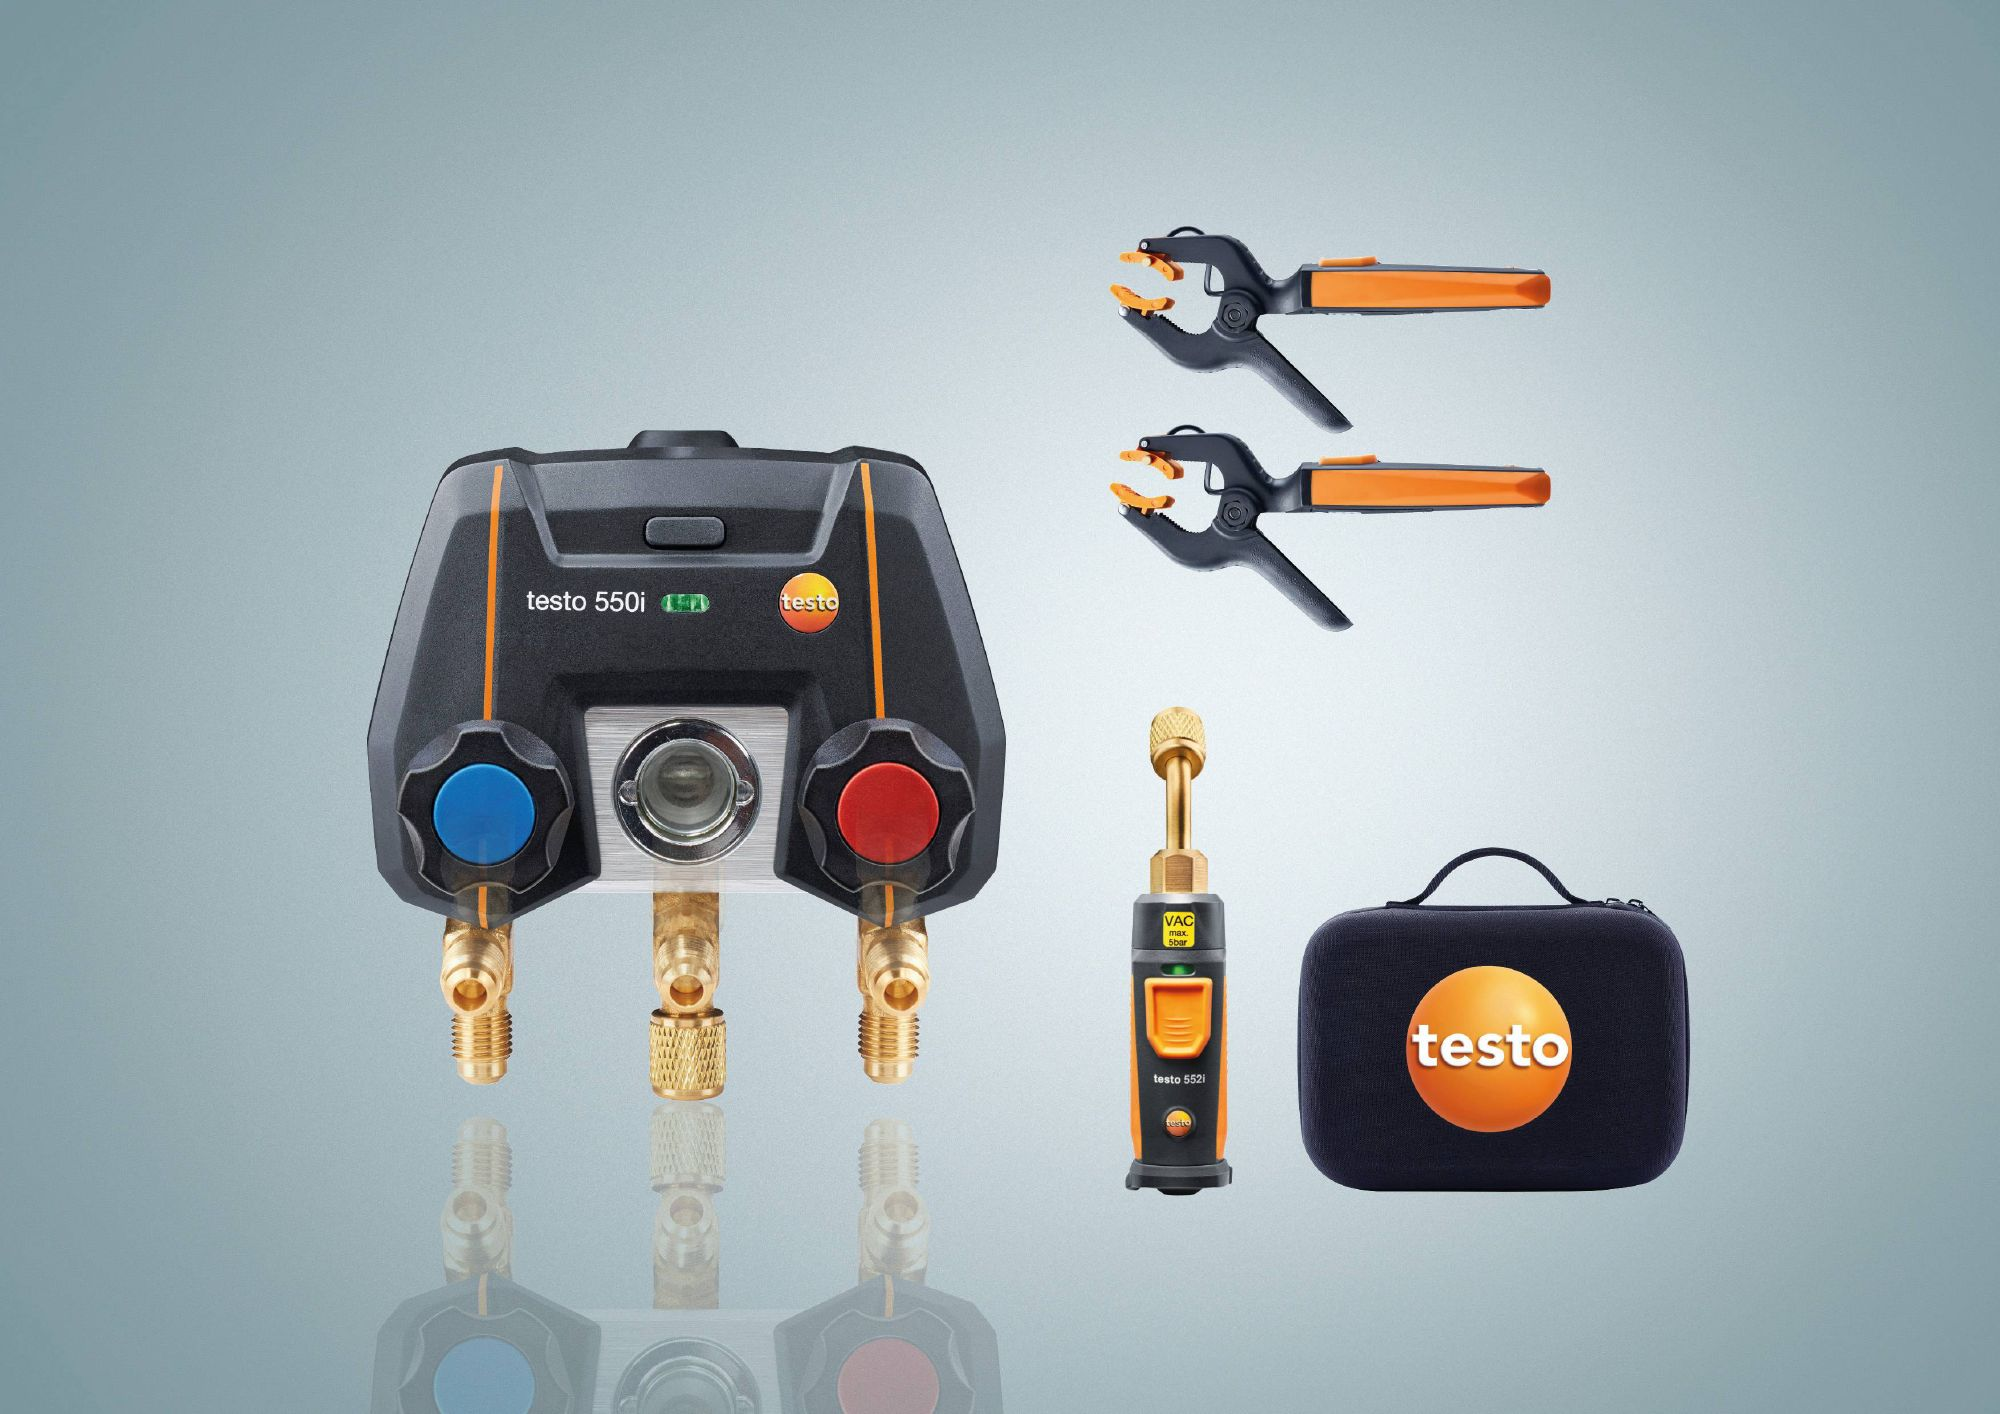 testo 550i Smart Kit - App operated Manifold with wireless temperature probes / micron gauge